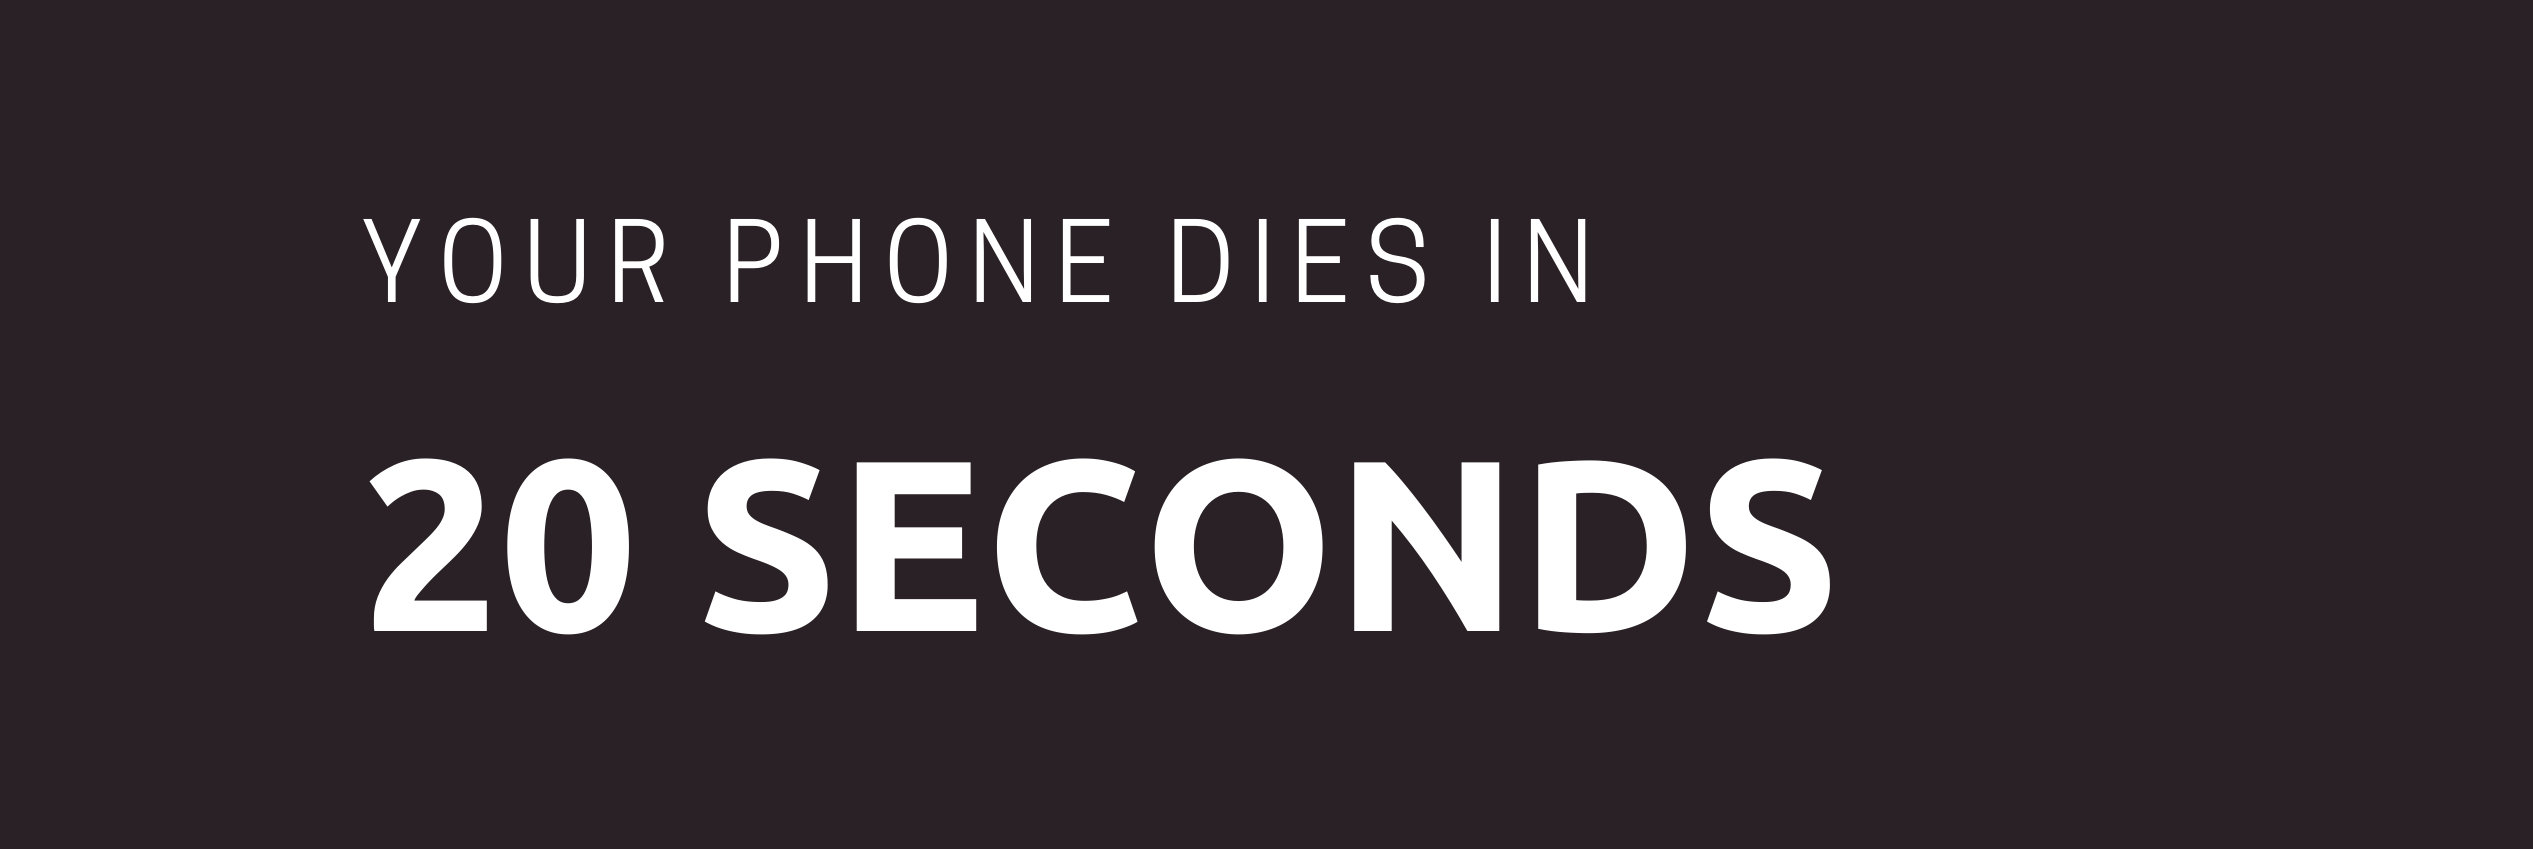 Your Phone Dies in 20 Seconds